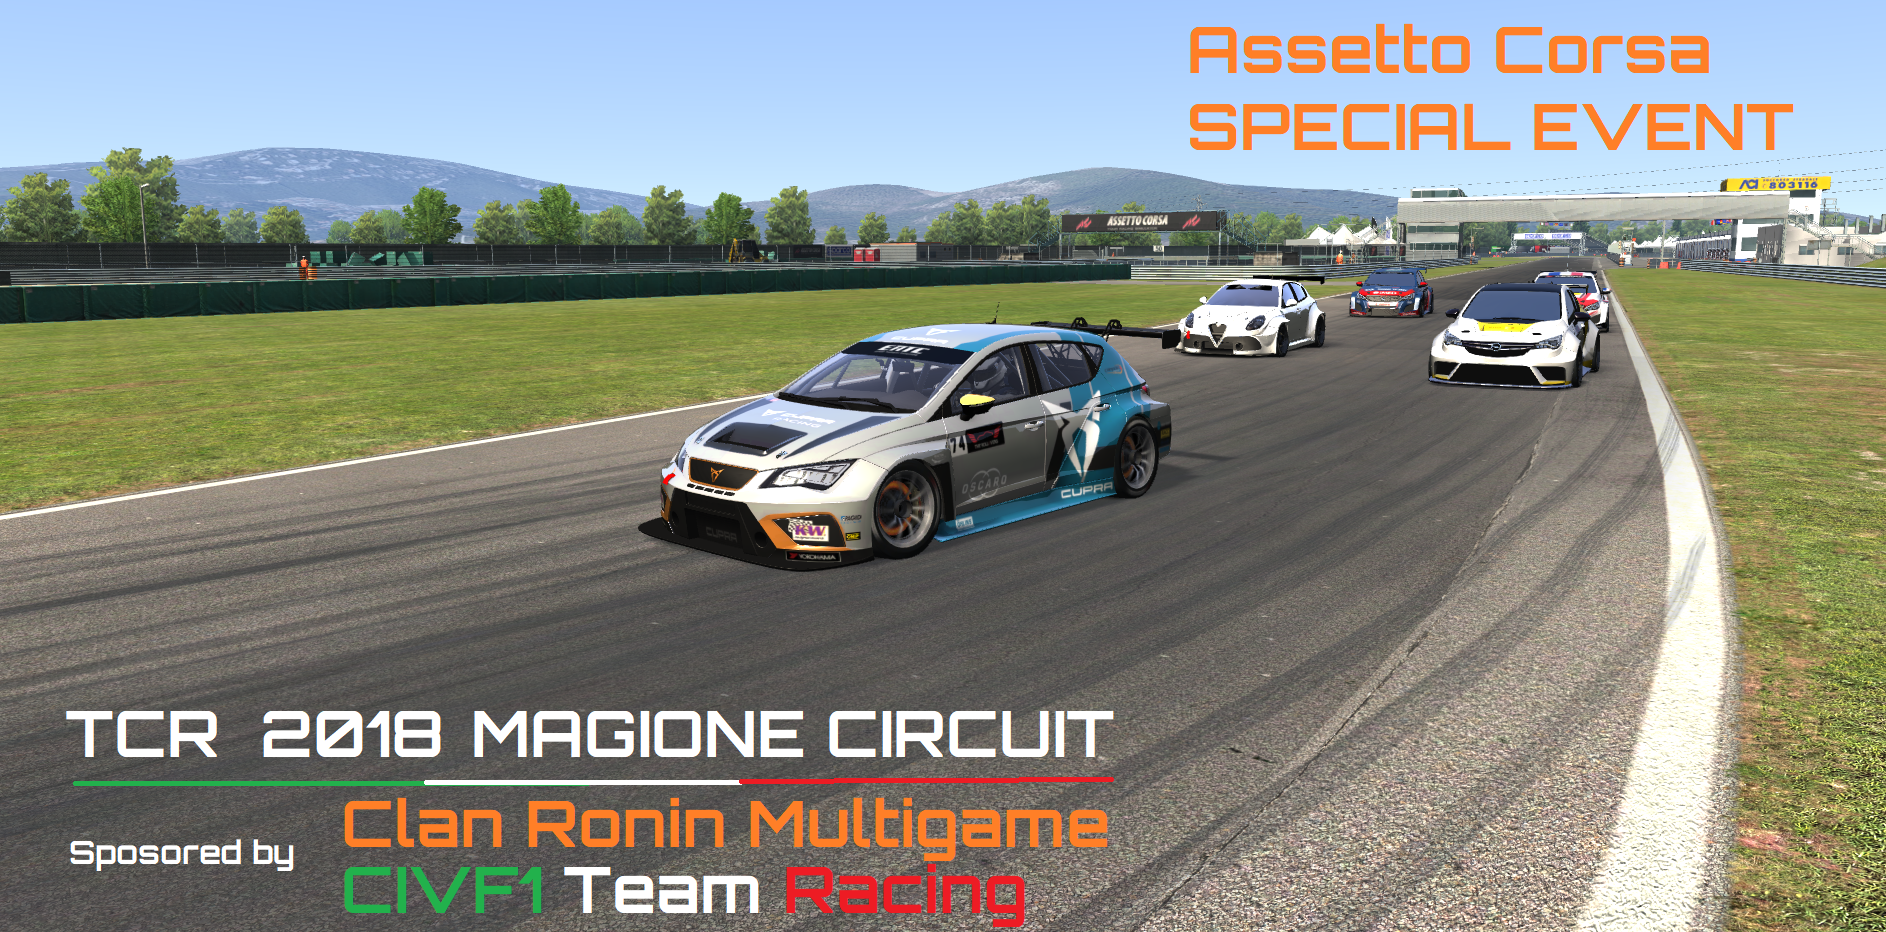 A.C. Special Event TCR – Magione